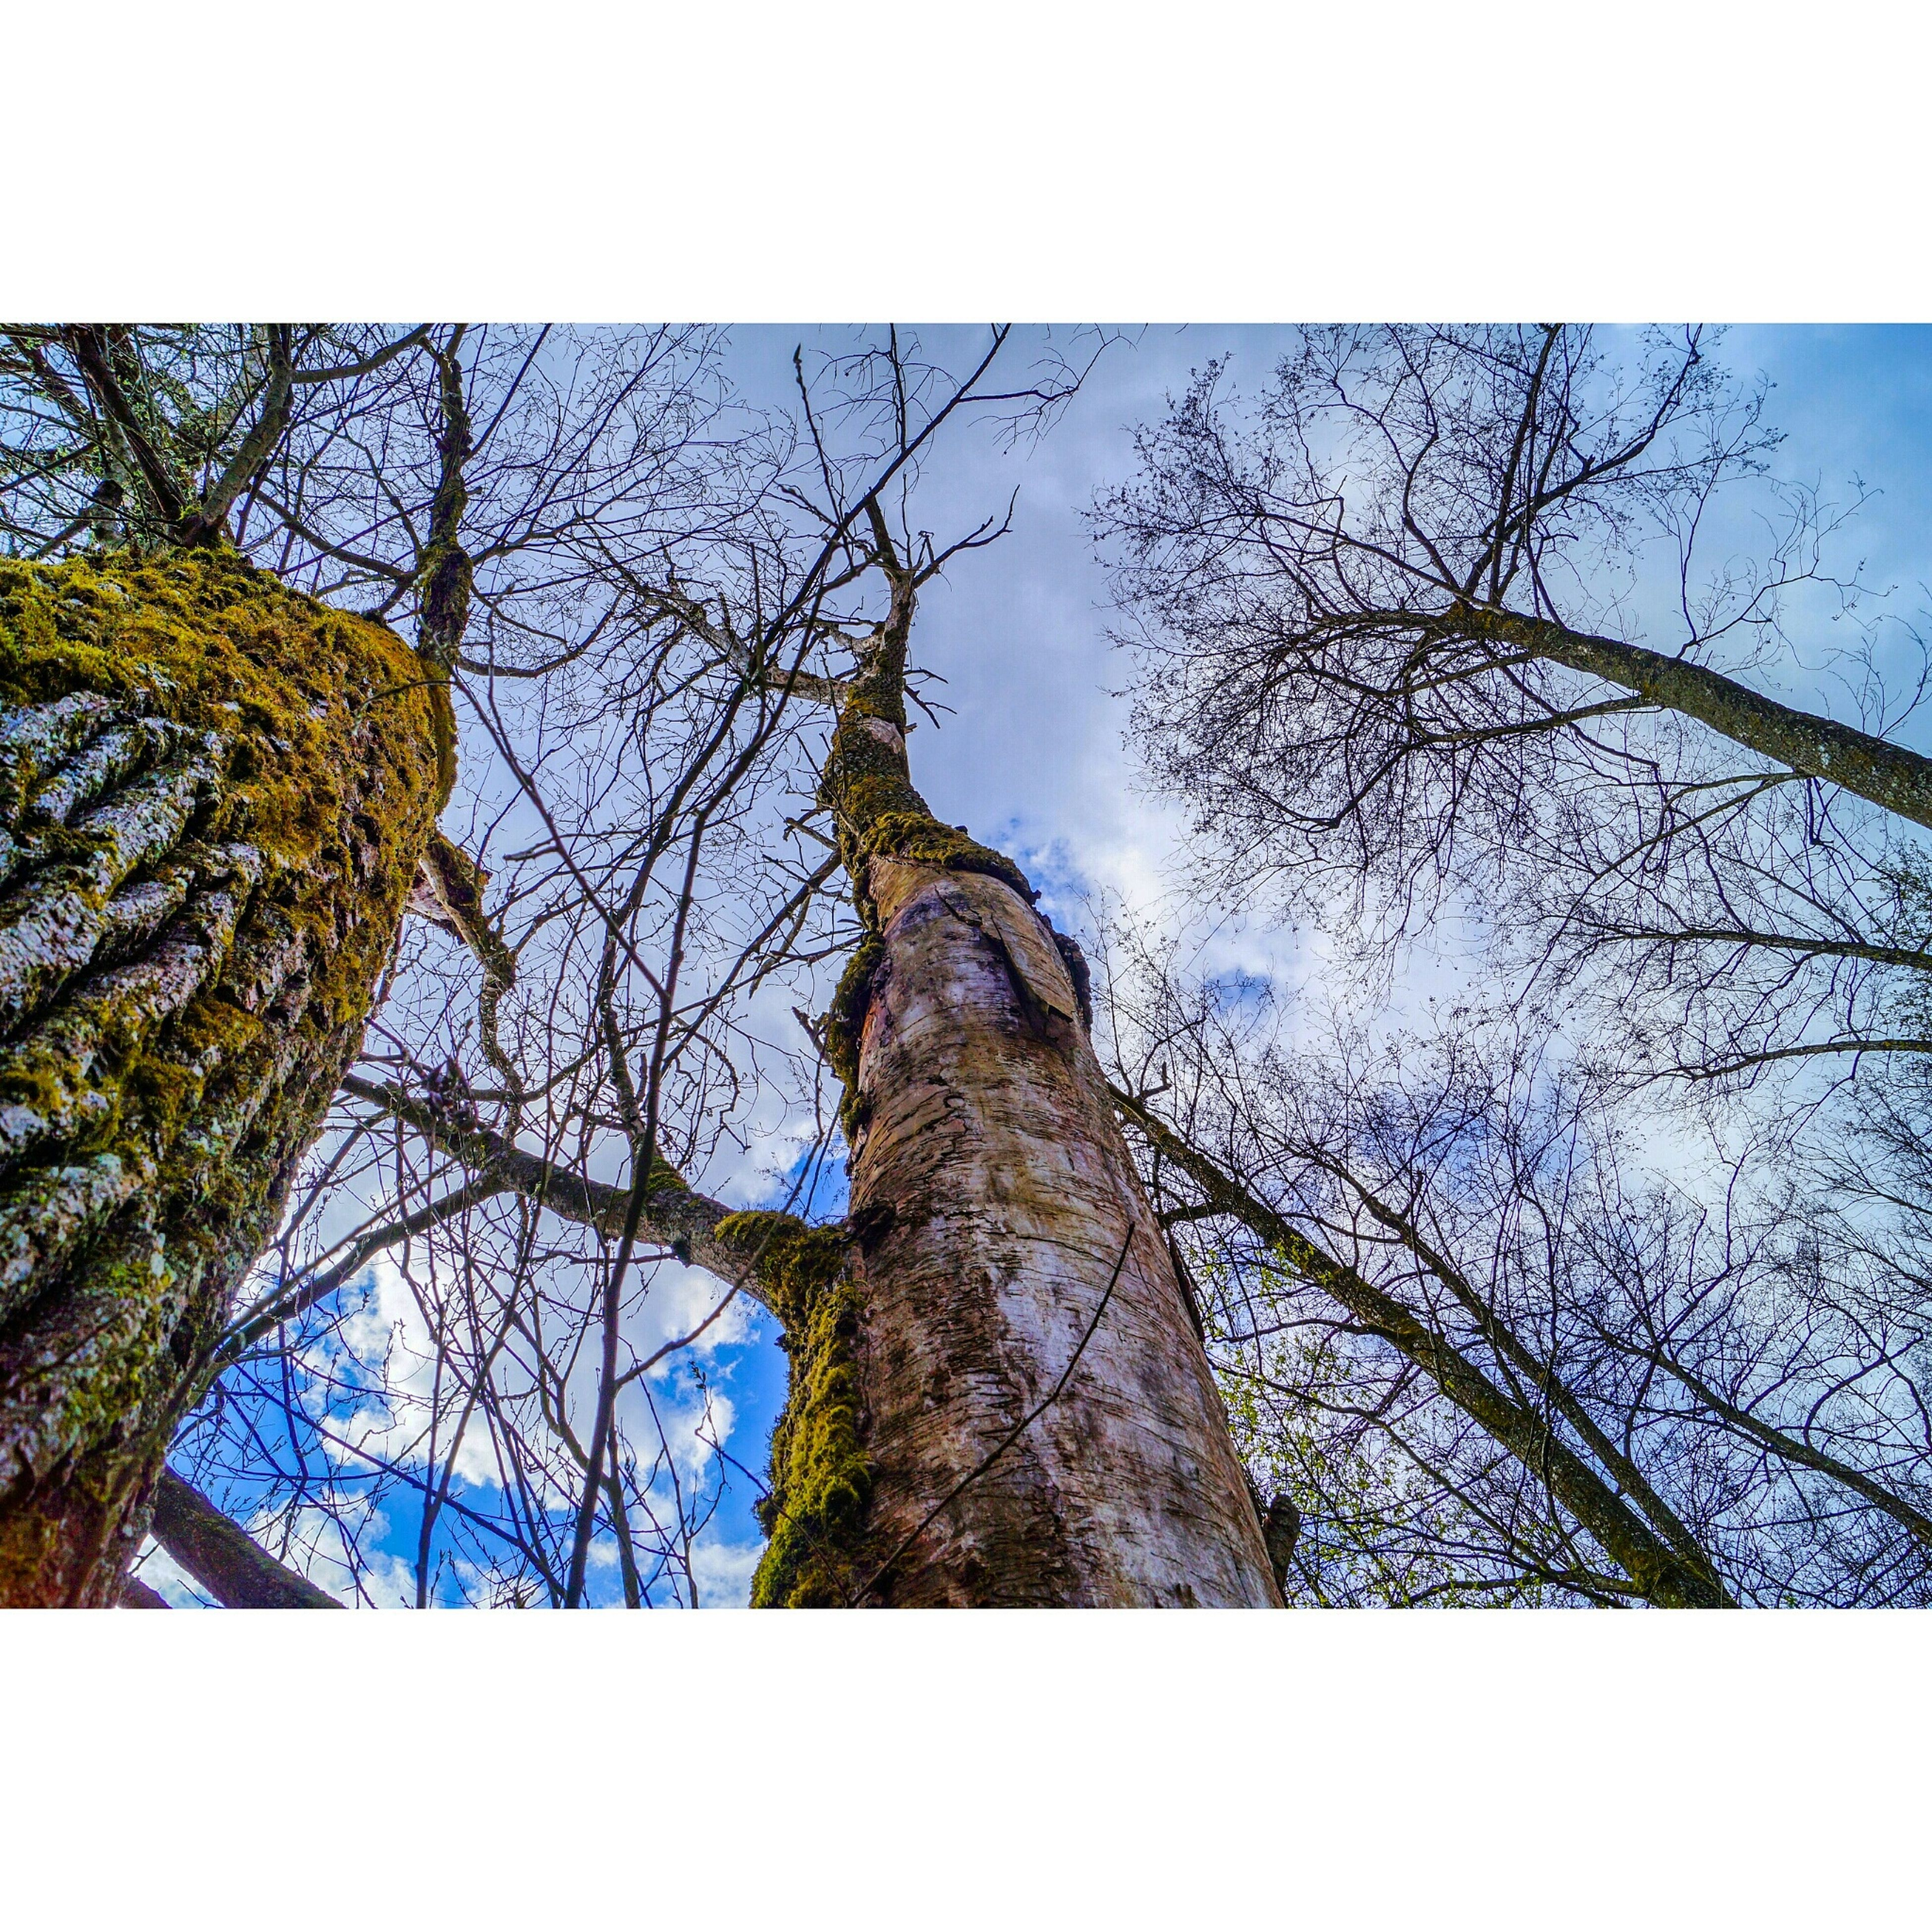 tree, low angle view, branch, tree trunk, transfer print, bare tree, sky, nature, tranquility, auto post production filter, clear sky, growth, blue, beauty in nature, day, no people, outdoors, silhouette, scenics, tranquil scene